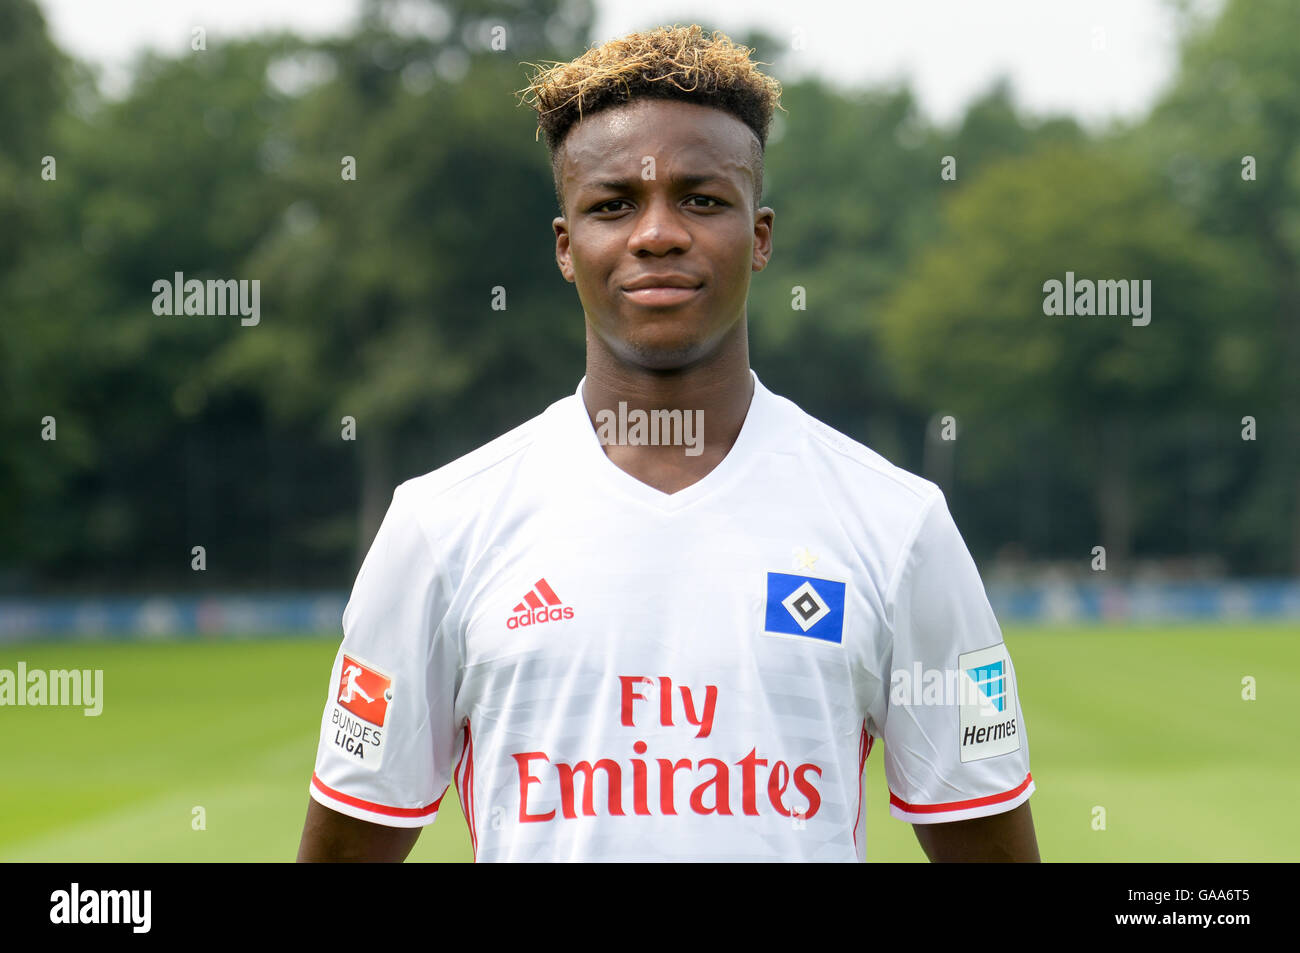 German Bundesliga - Season 2016/17 - Photocall Hamburger SV on 25 June 2016 in Hamburg, Germany: Gideon Jung. Photo: - Stock Image